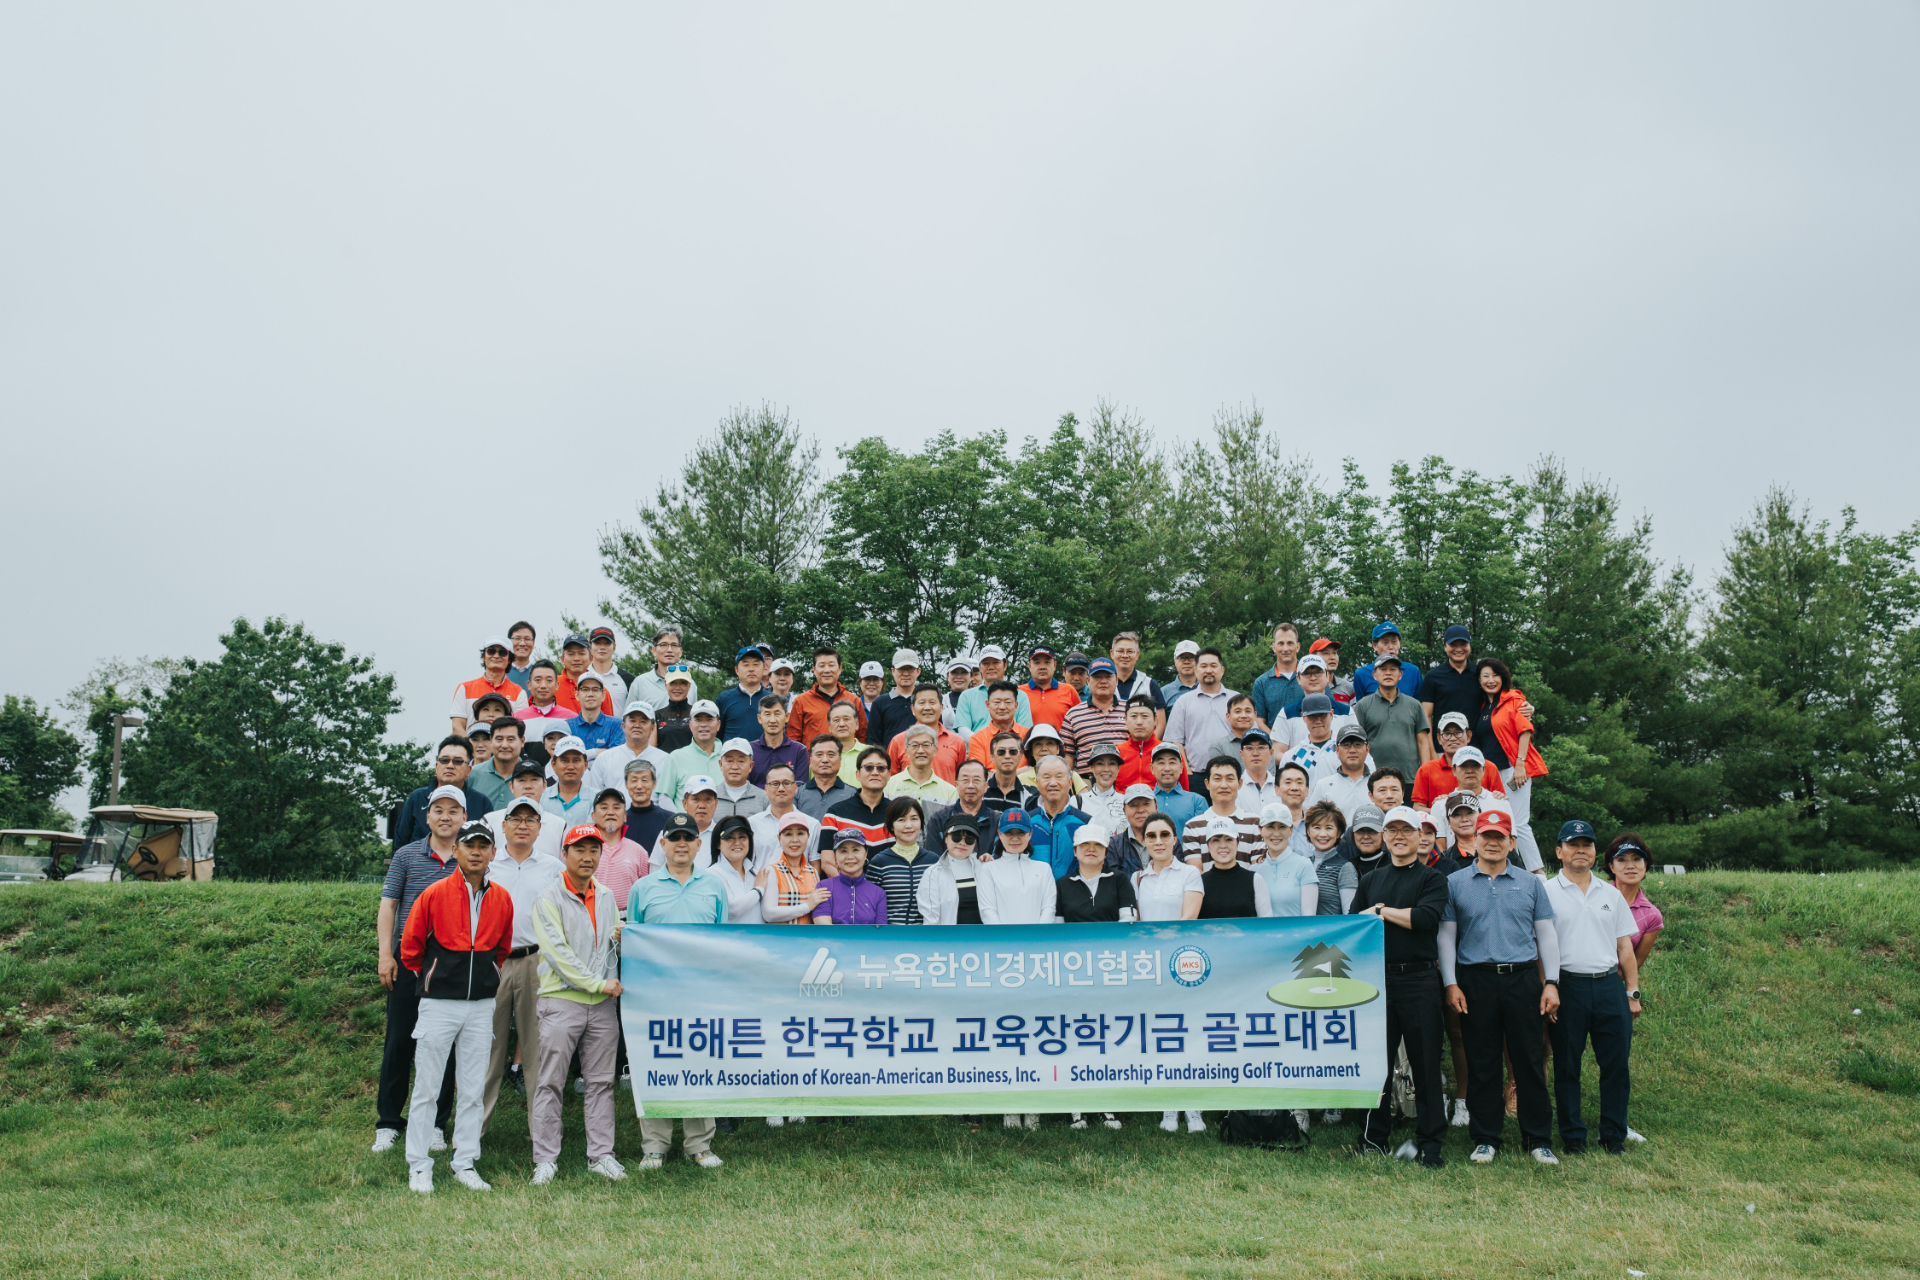 https://nykbi.com/new/wp-content/uploads/2019/07/190619-Scholarship-Fundraising-Golf-Tournament-010.jpg